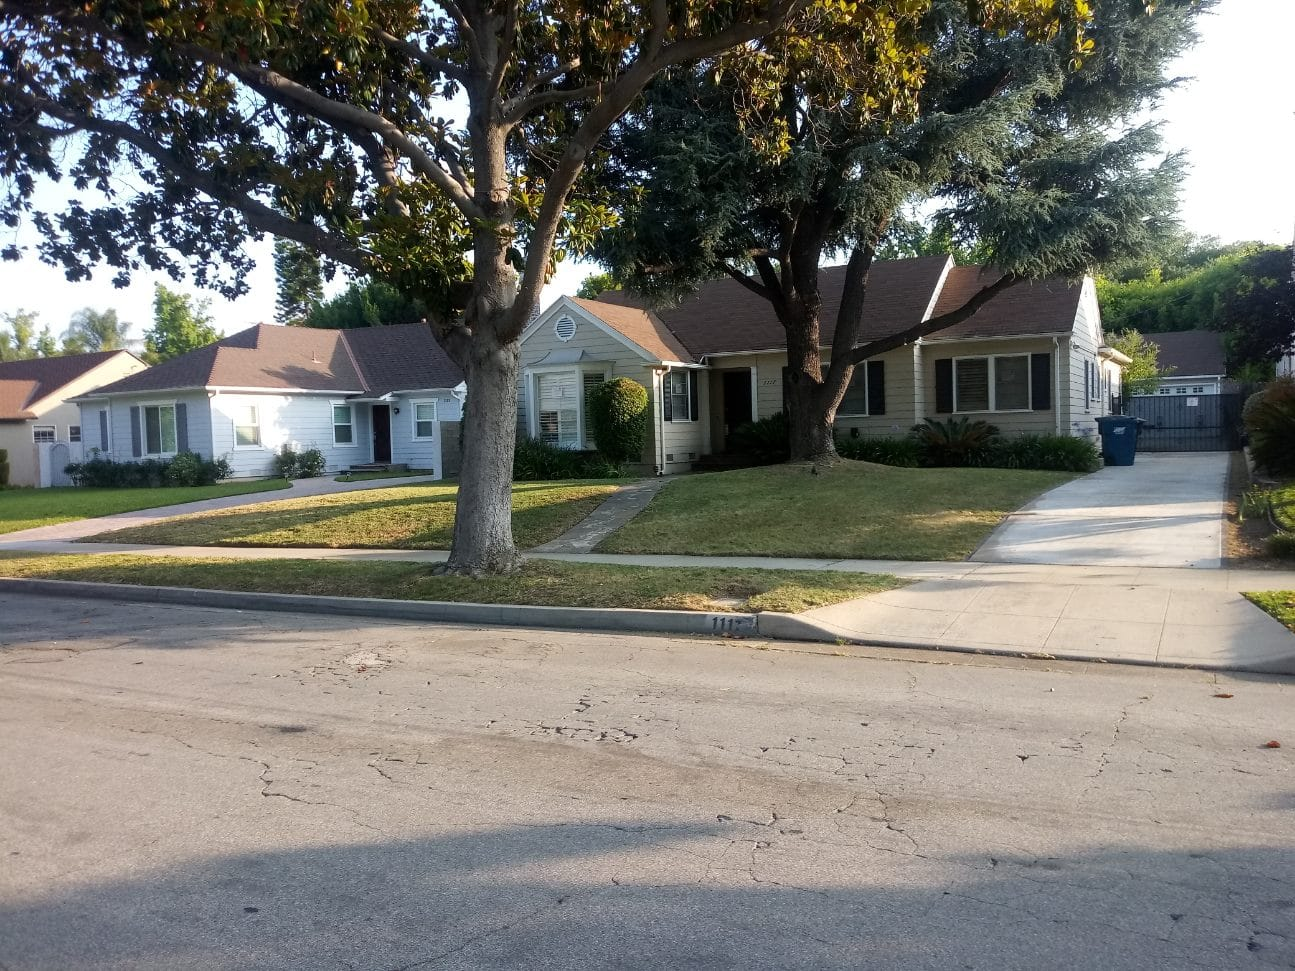 Live Auction: Single Family Home (1117 N. Almansor St) In Alhambra, California